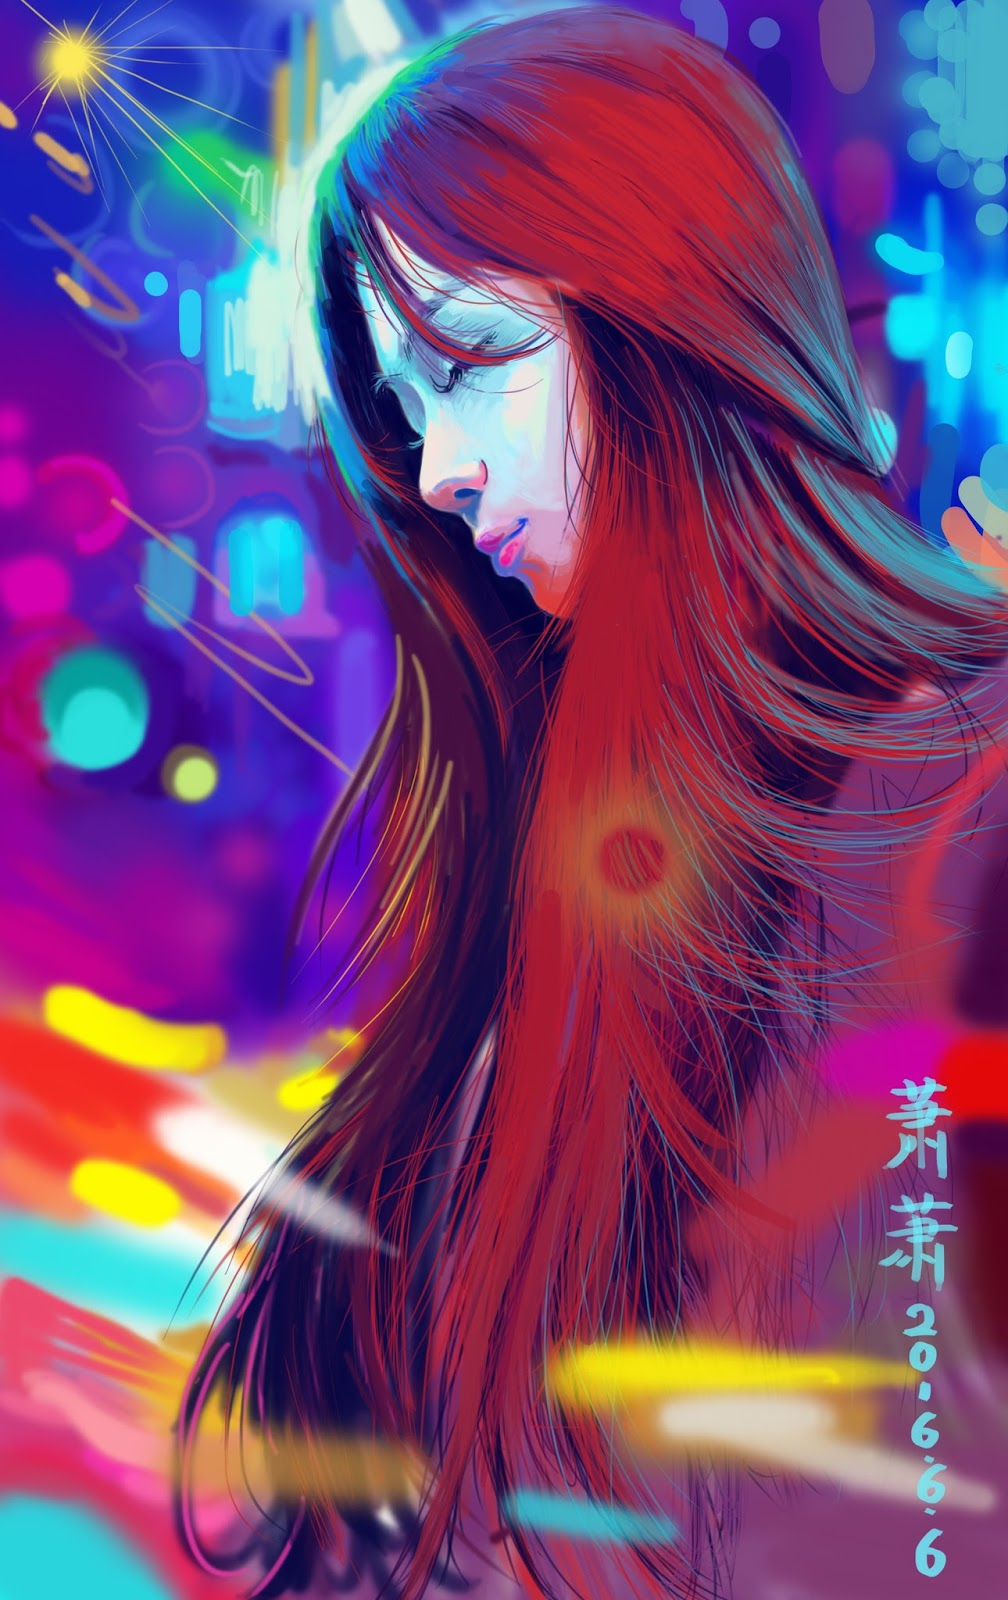 Beautiful Illustrations by Feng Xiao